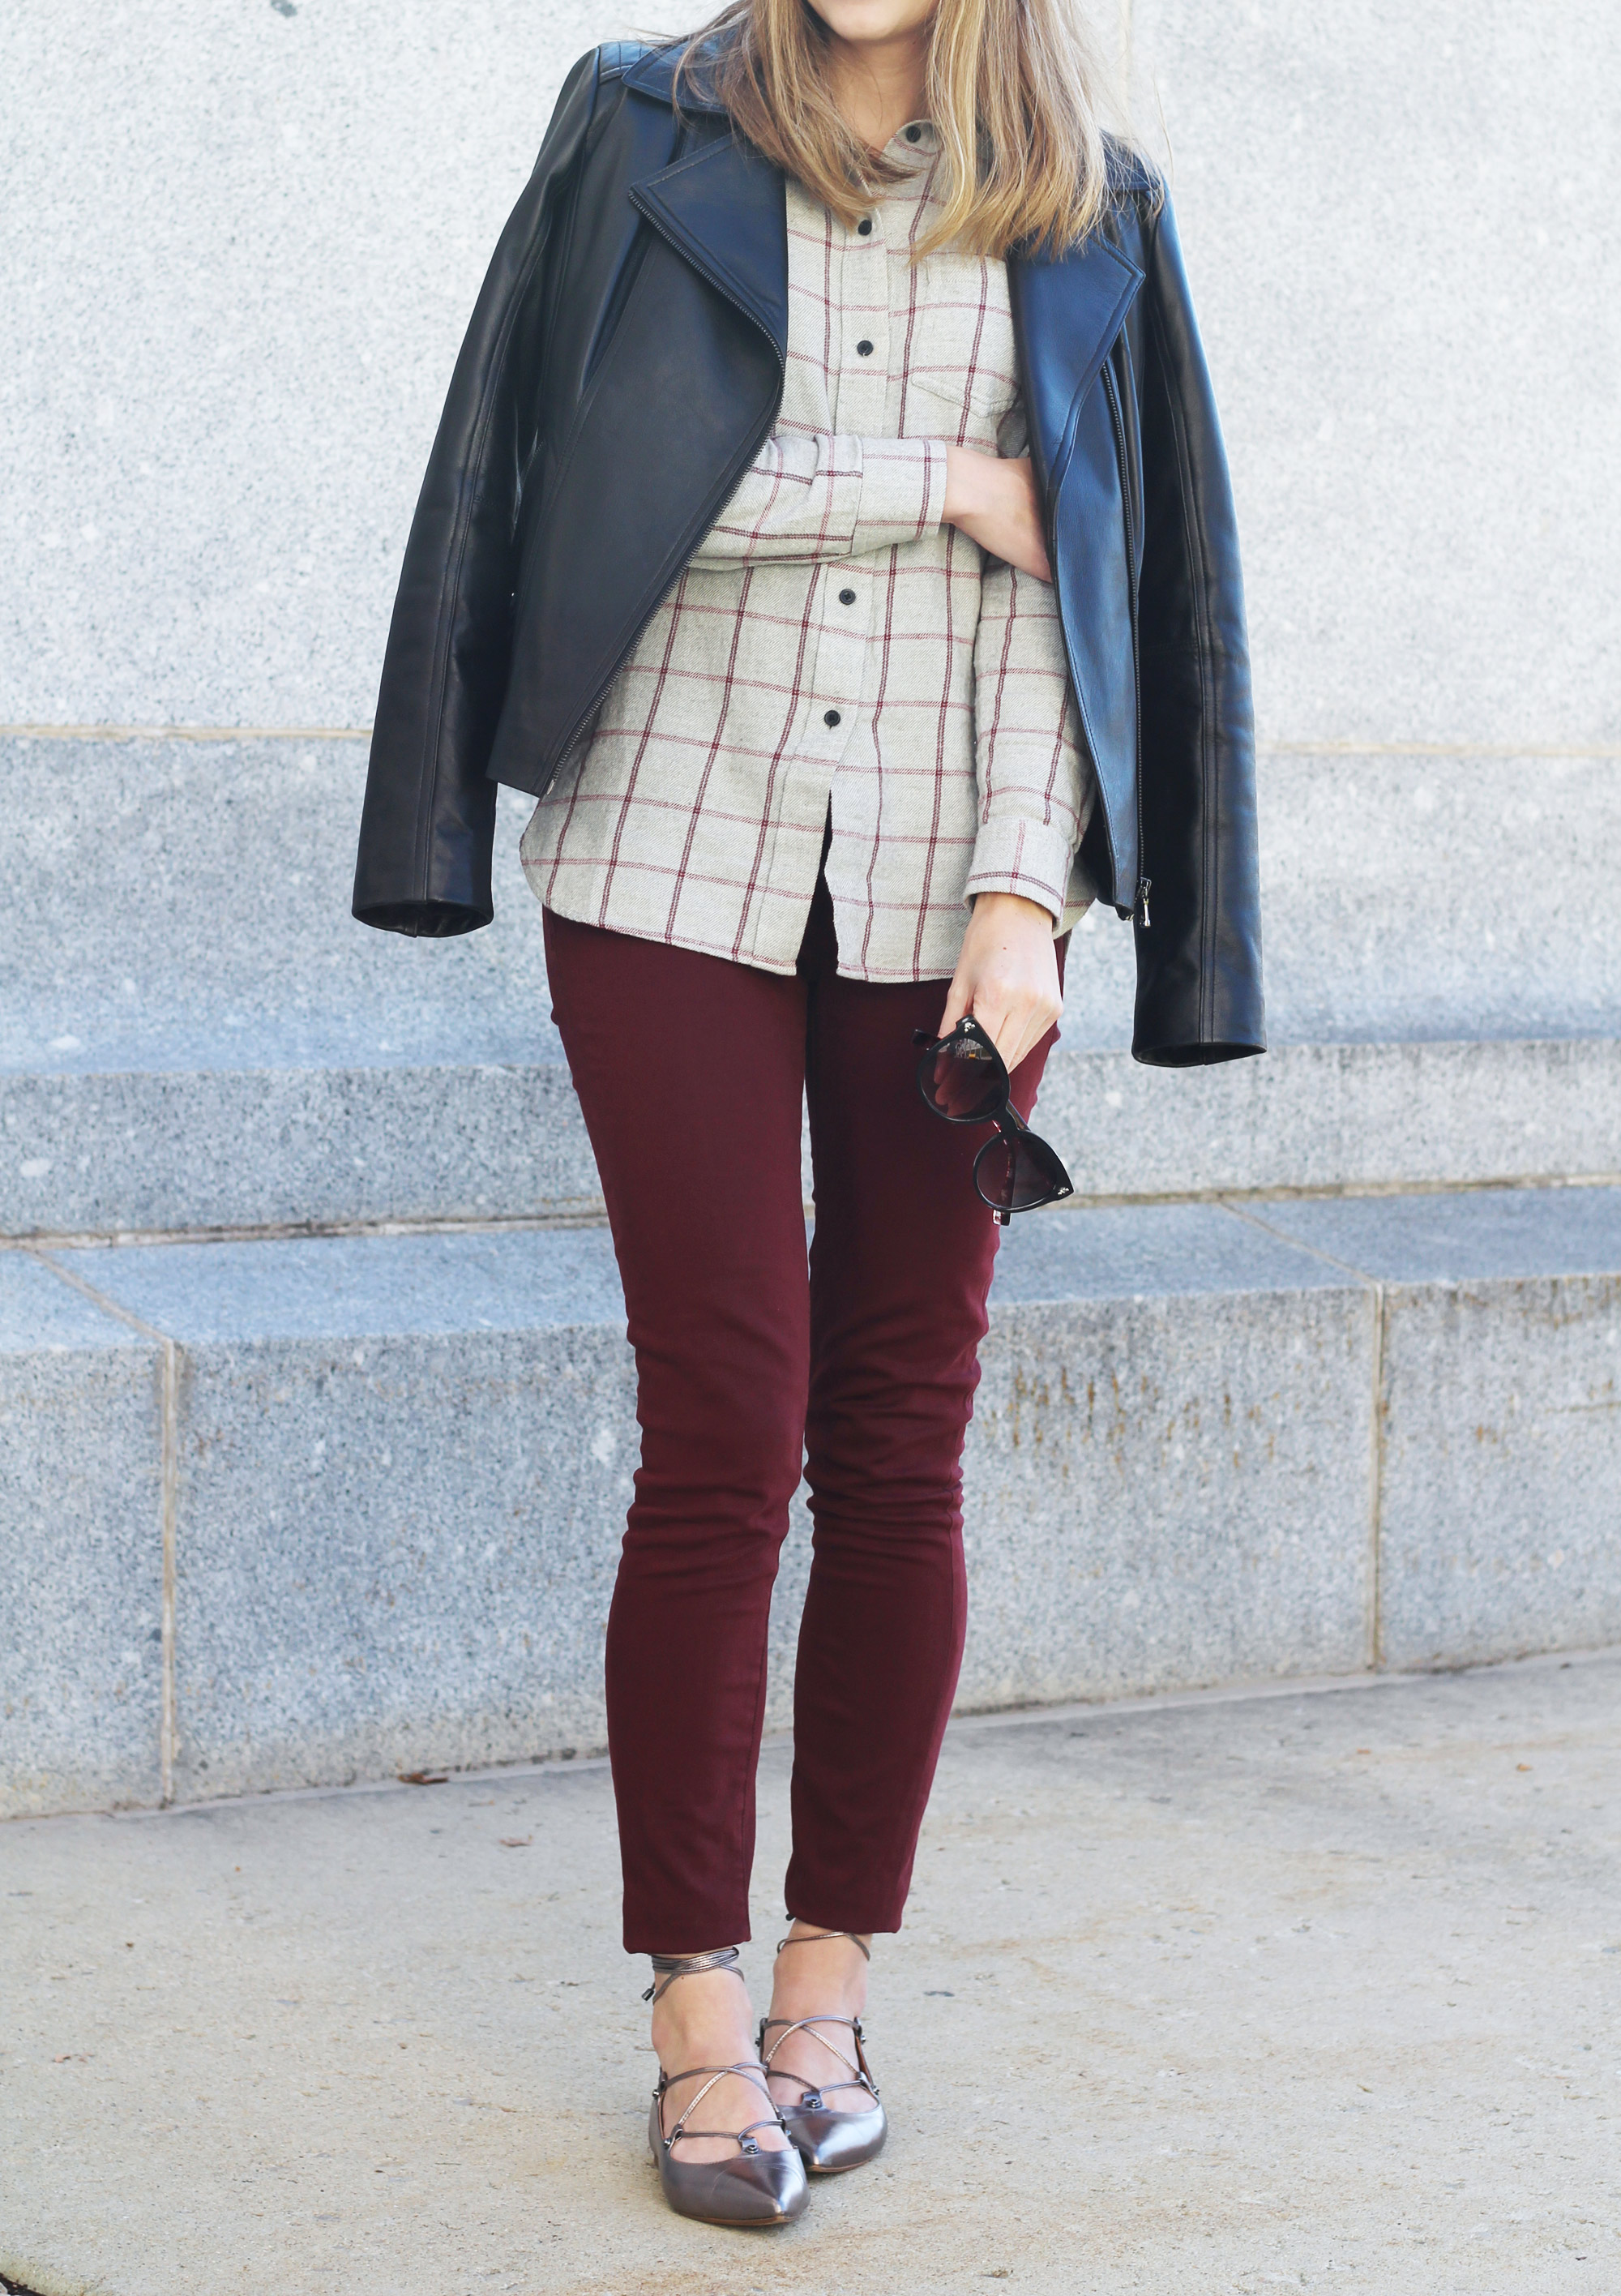 Fall outfit: Leather jacket, grey flannel shirt, burgundy pants, pewter lace-up flats — Cotton Cashmere Cat Hair